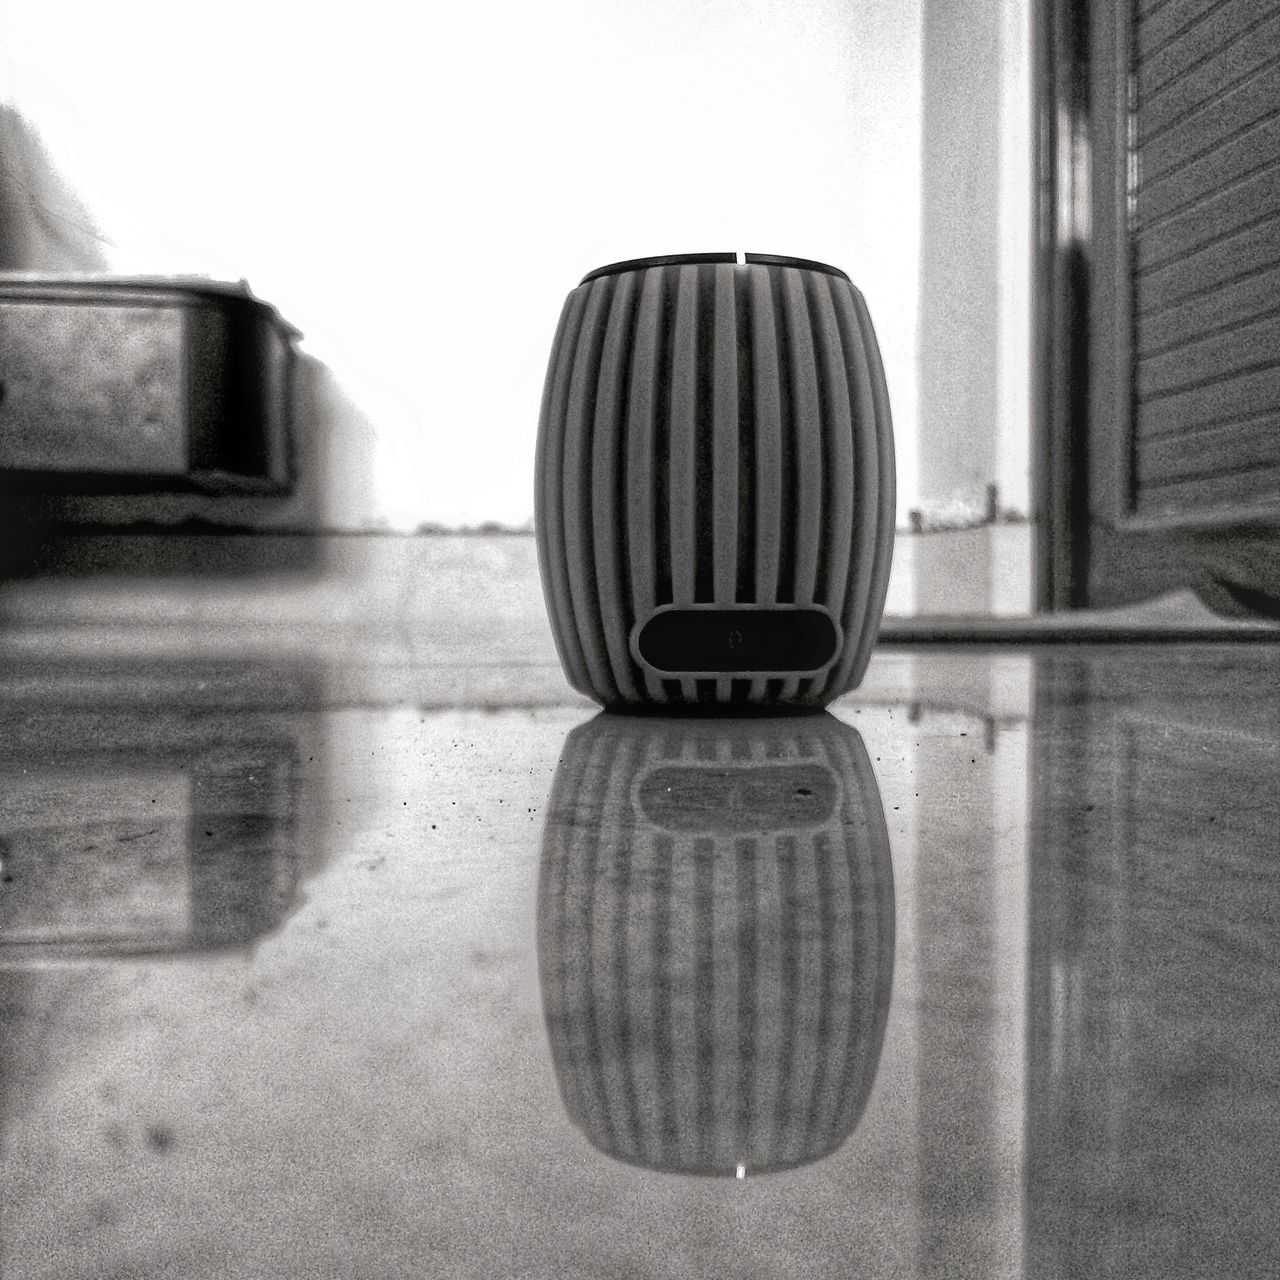 indoors, no people, day, reflection, close-up, architecture